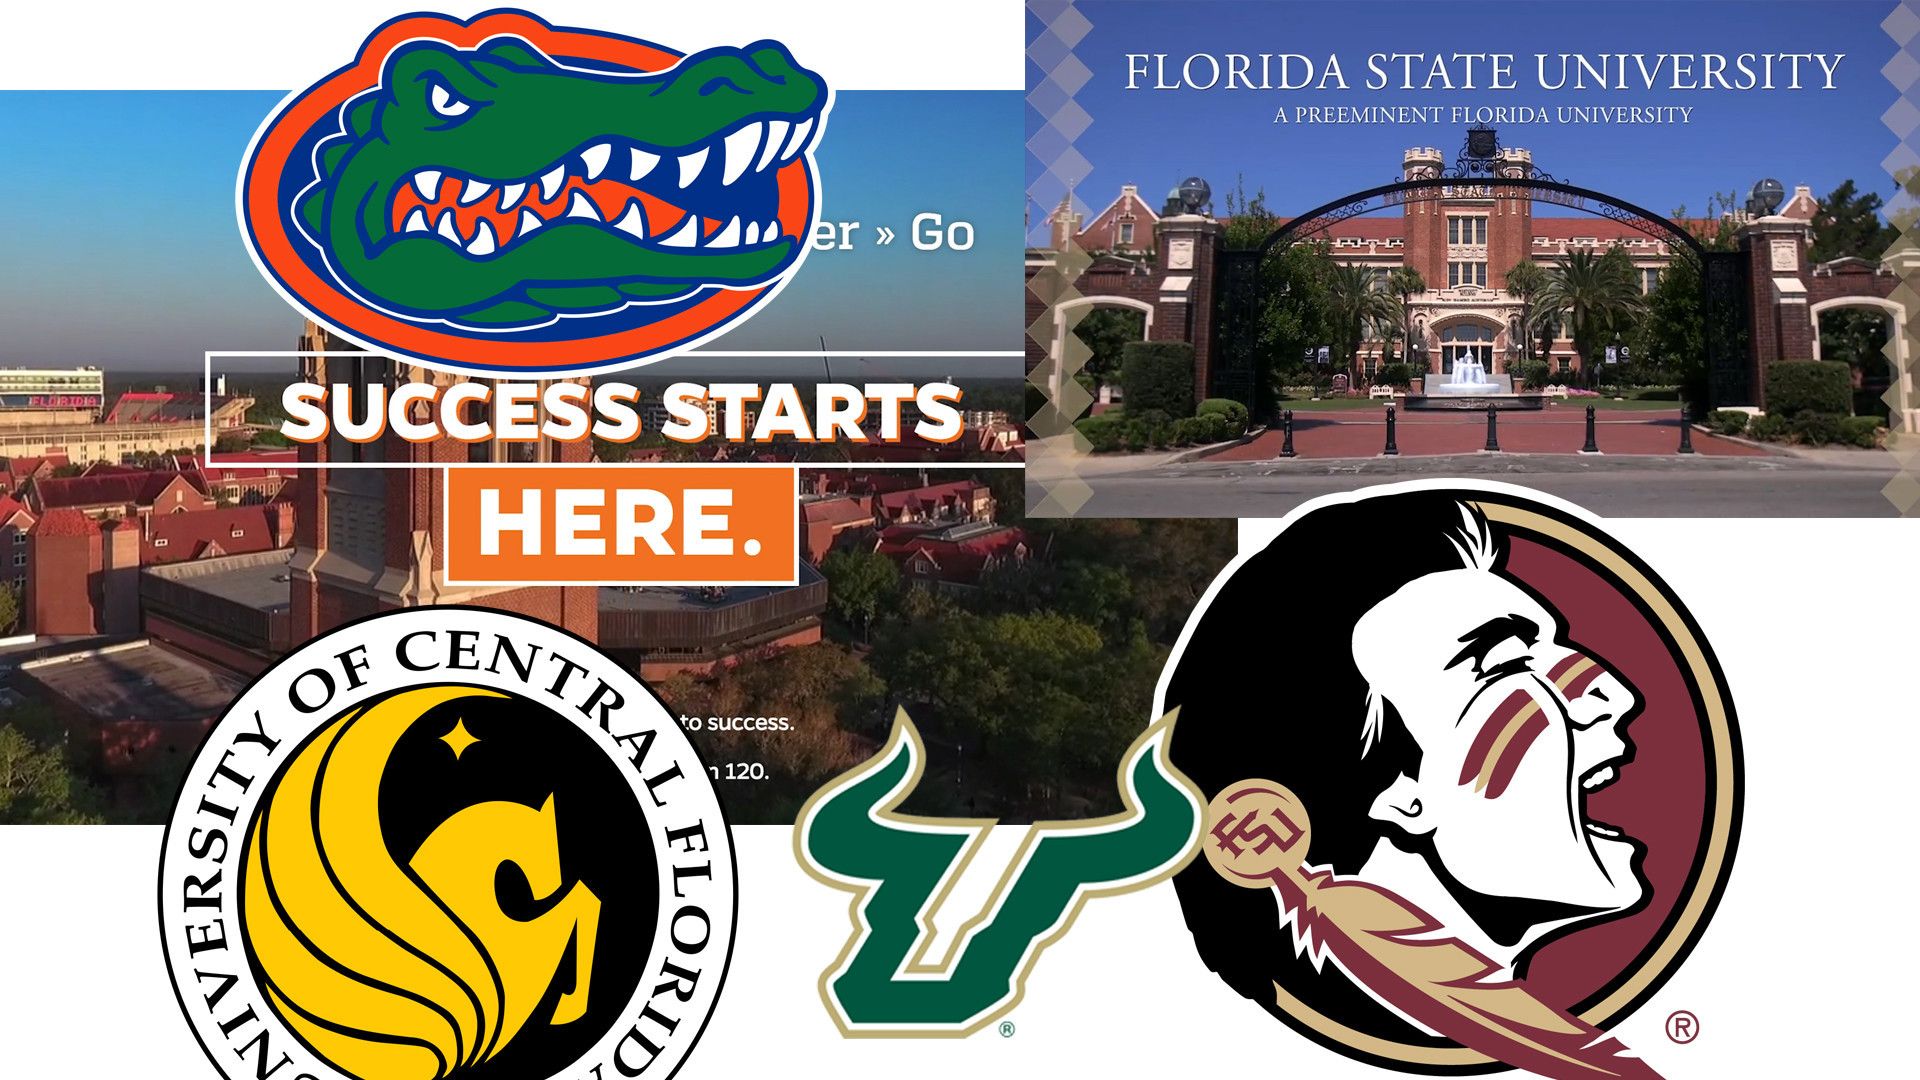 Ucf Gpa Requirements >> Florida College Admissions Getting Into Uf Fsu Ucf May Depend A